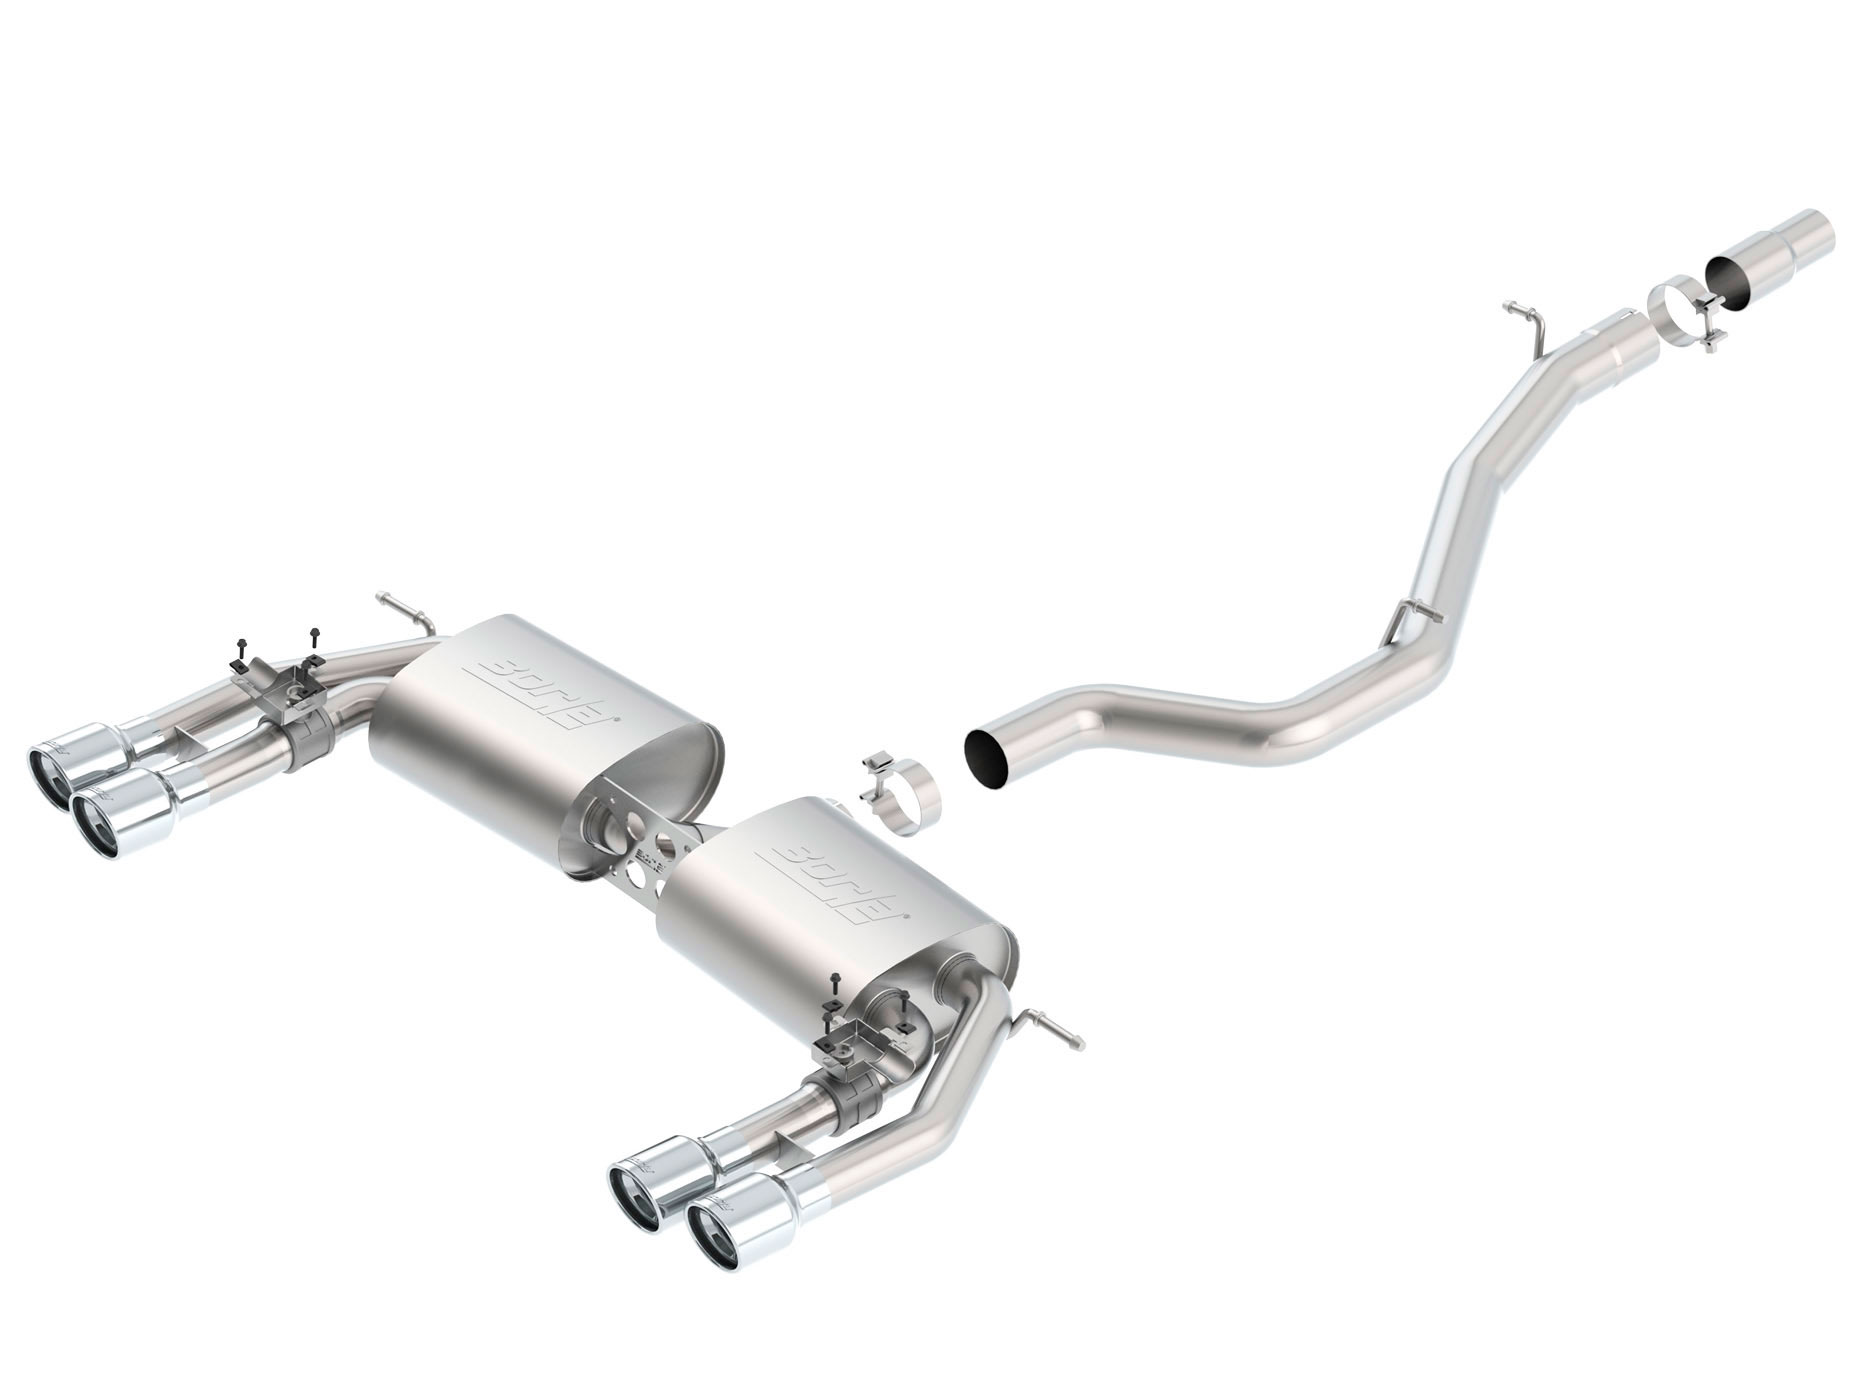 borla exhaust 140631 borla audi s3 s type cat back exhaust system rh lmperformance com Audi A3 Milltek Exhaust Audi A3 Performance